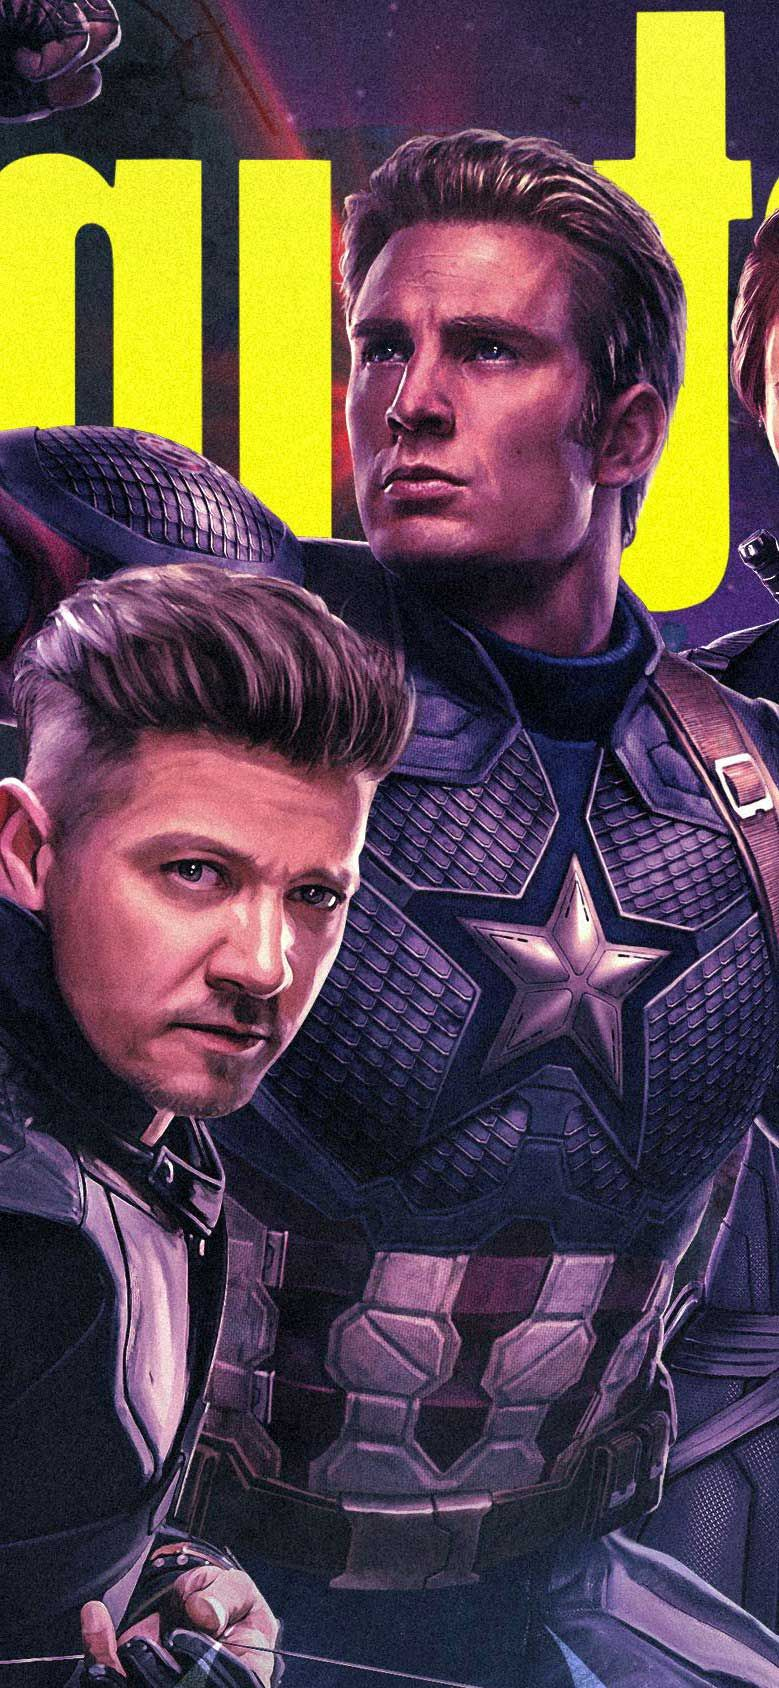 Wallpaper Iphone X Hawkeye Captain America In Avengers Endgame